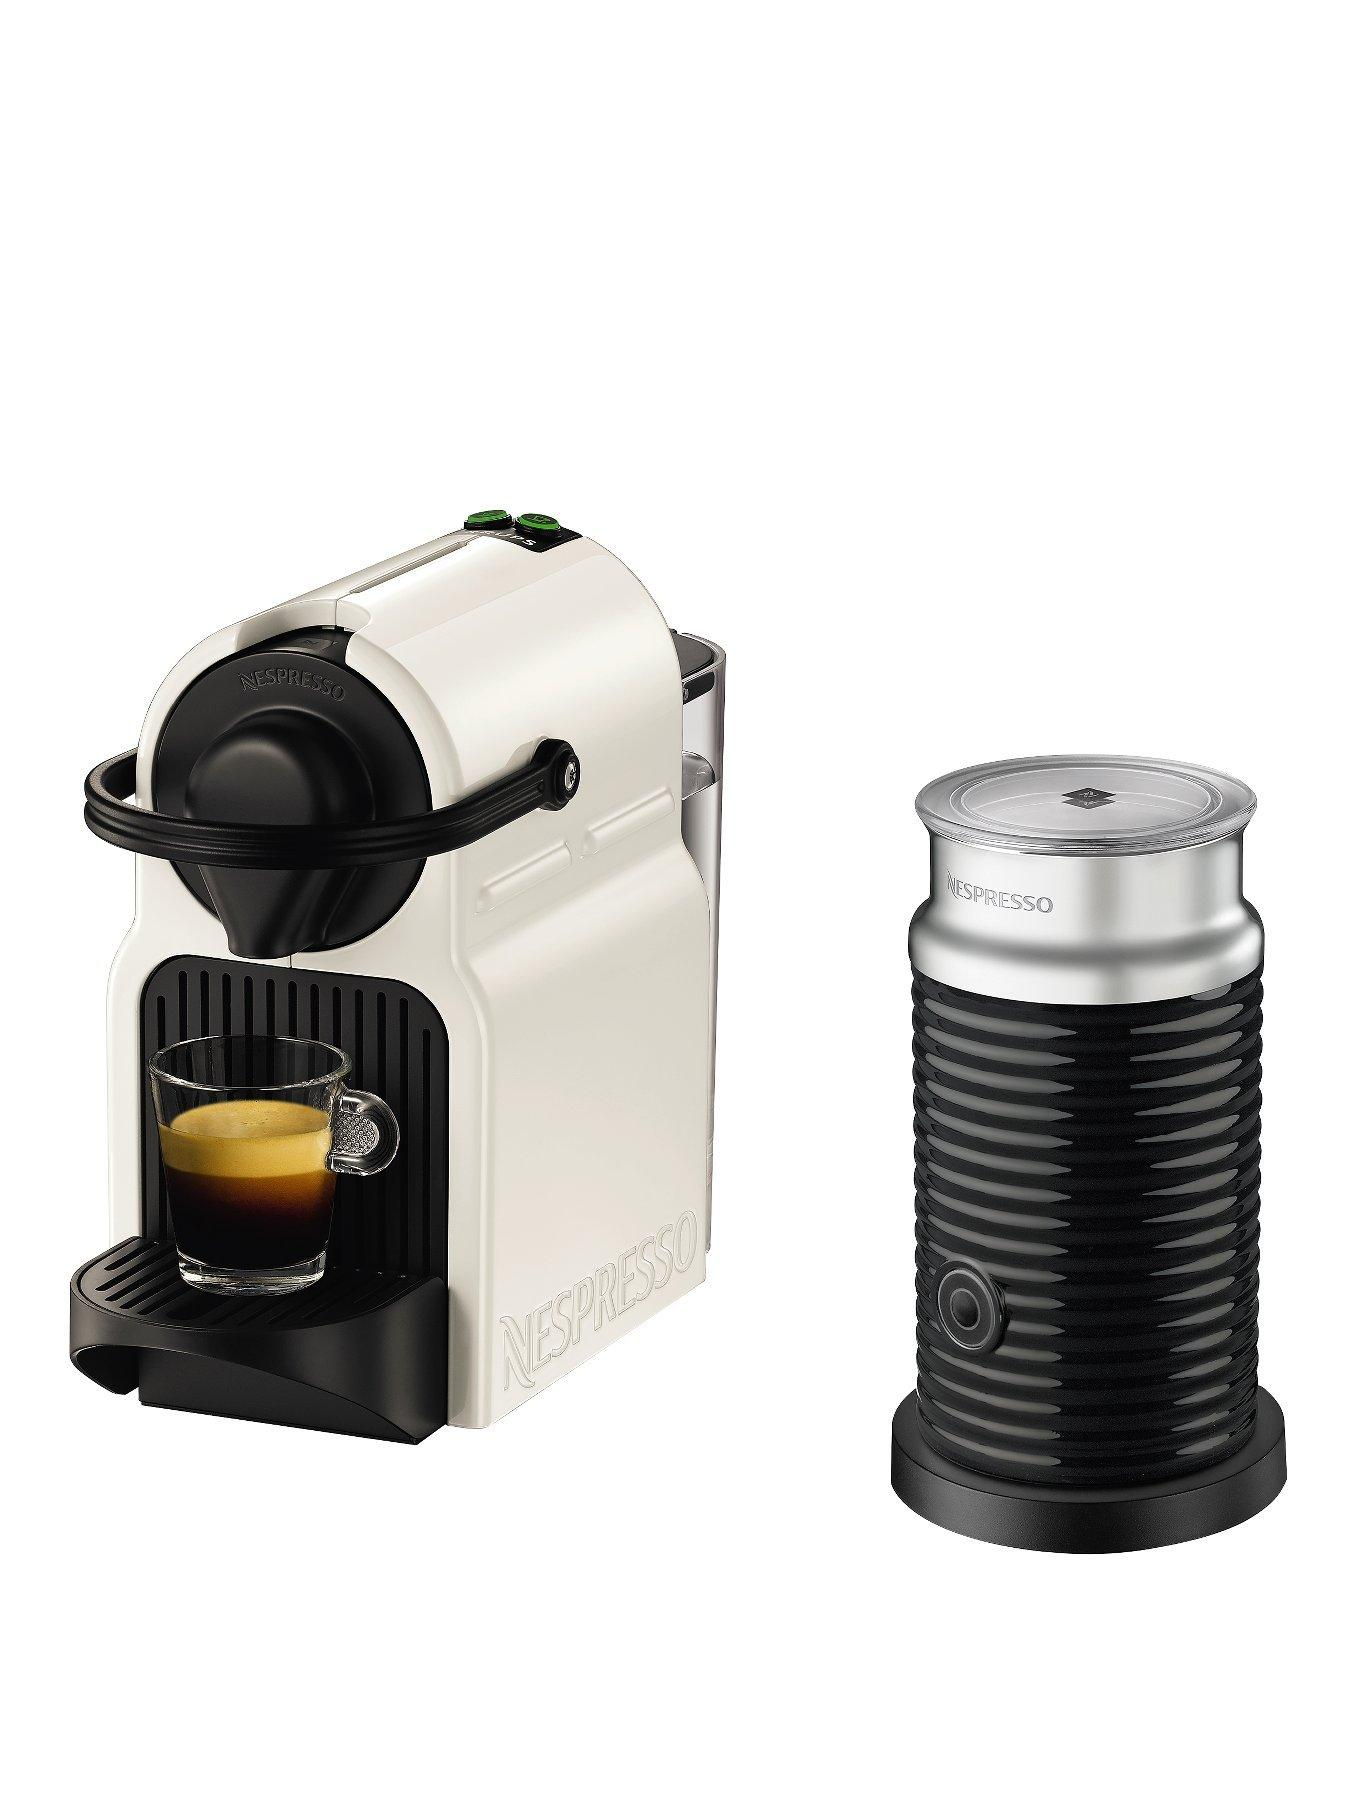 Krups Coffee Maker And Frother : Nespresso Inissia XN101140 Coffee Machine with Milk Frother by Krups - White very.co.uk